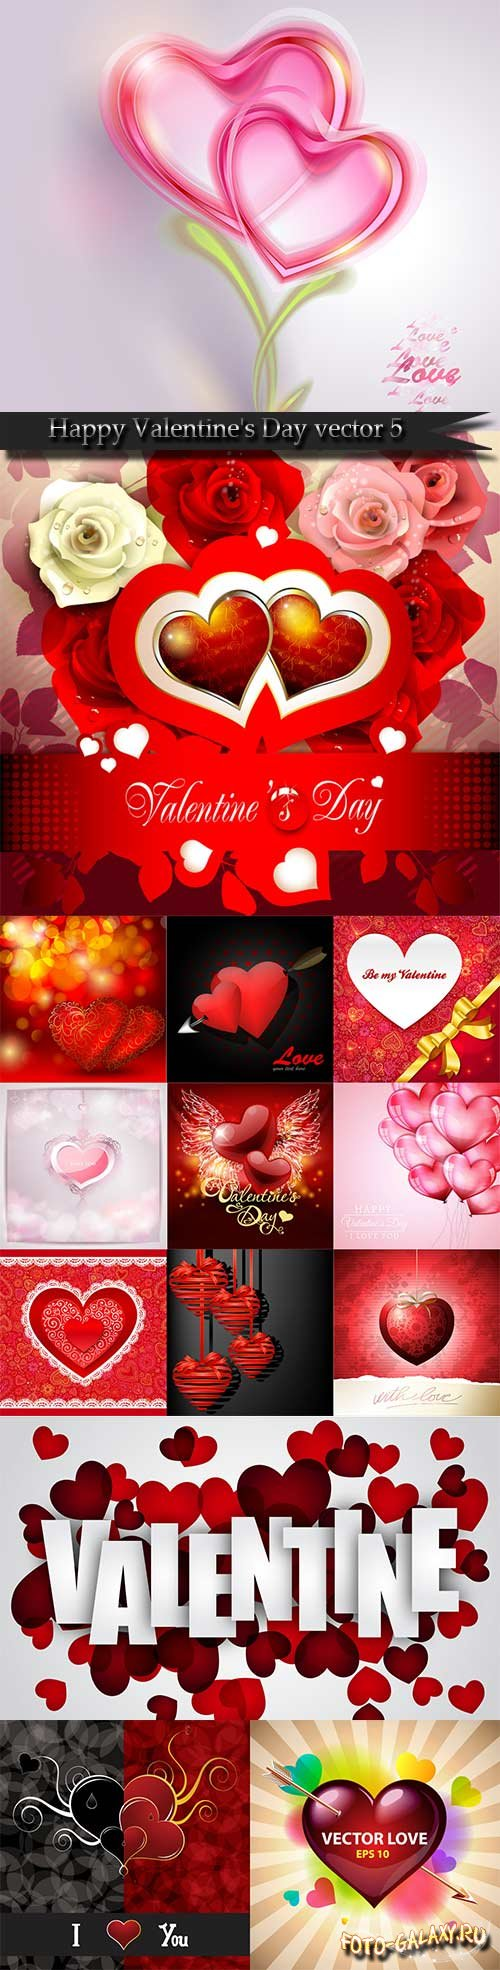 Happy Valentine's Day vector 5